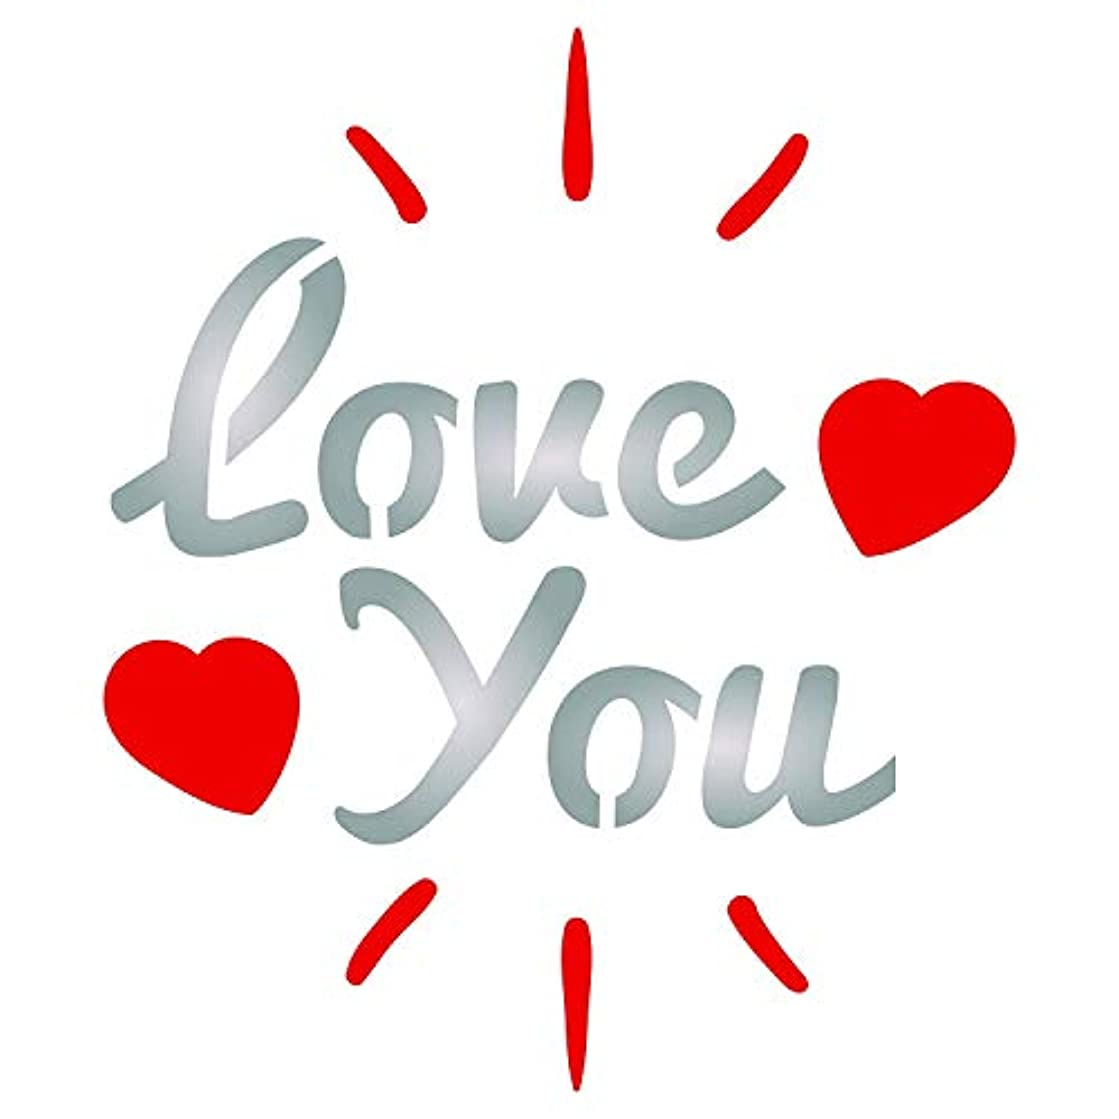 Love You Stencil - 4.5 x 5.25 inch (M) - Reusable Valentines Day Saying Quote Love Wall Stencil Template - Use On Paper Projects Scrapbook Journal Walls Floors Fabric Furniture Glass Wood Etc.